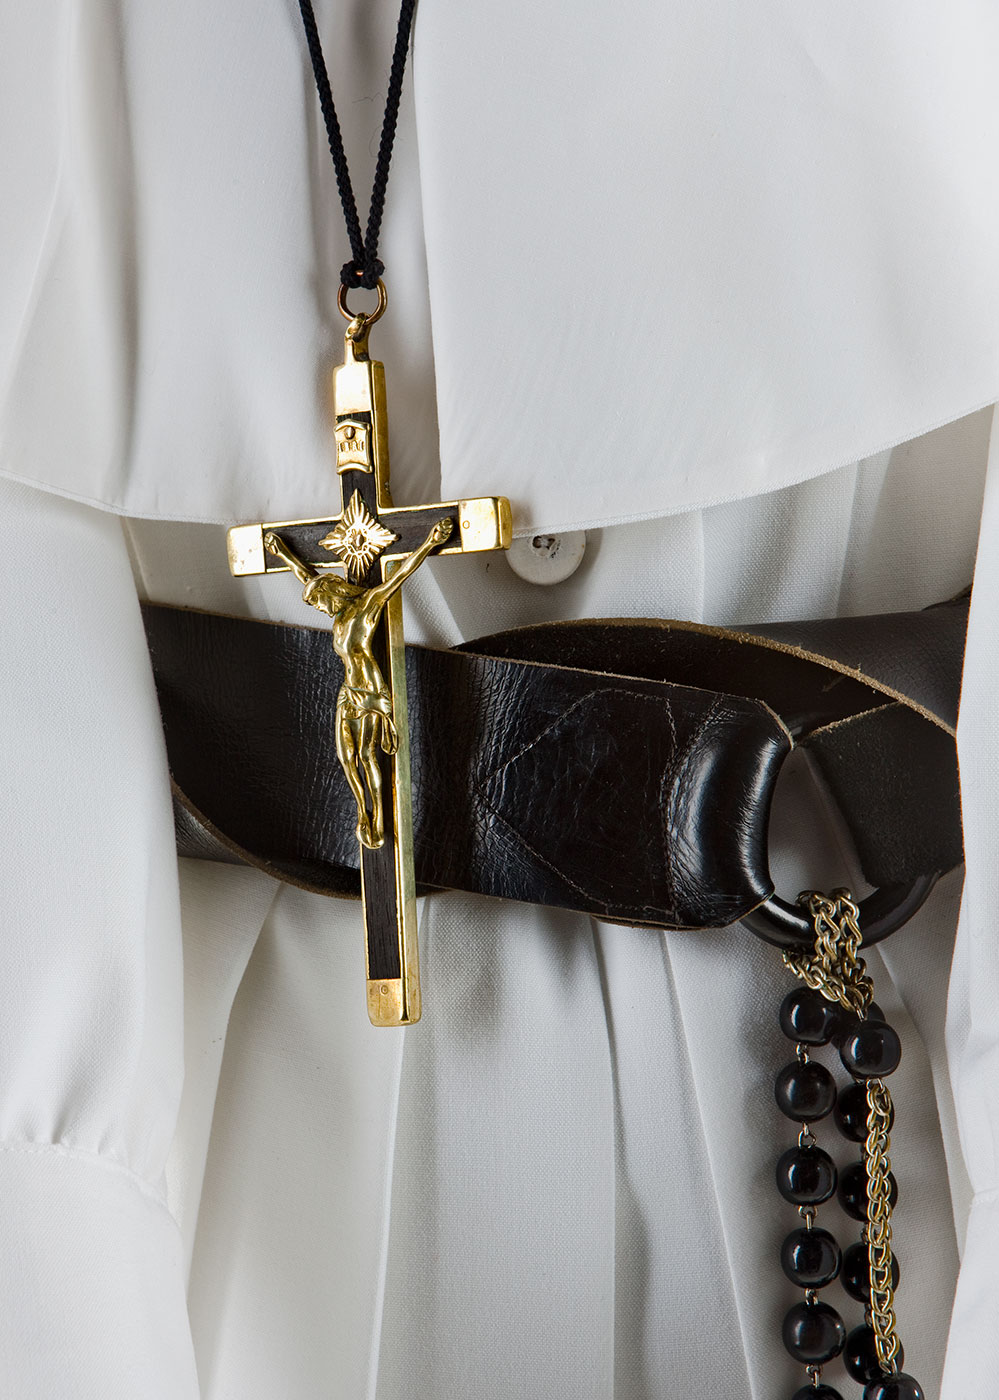 Habit featuring crucifix pendant with a gold Jesus, leather belt and rosary beads attached. - click to view larger image